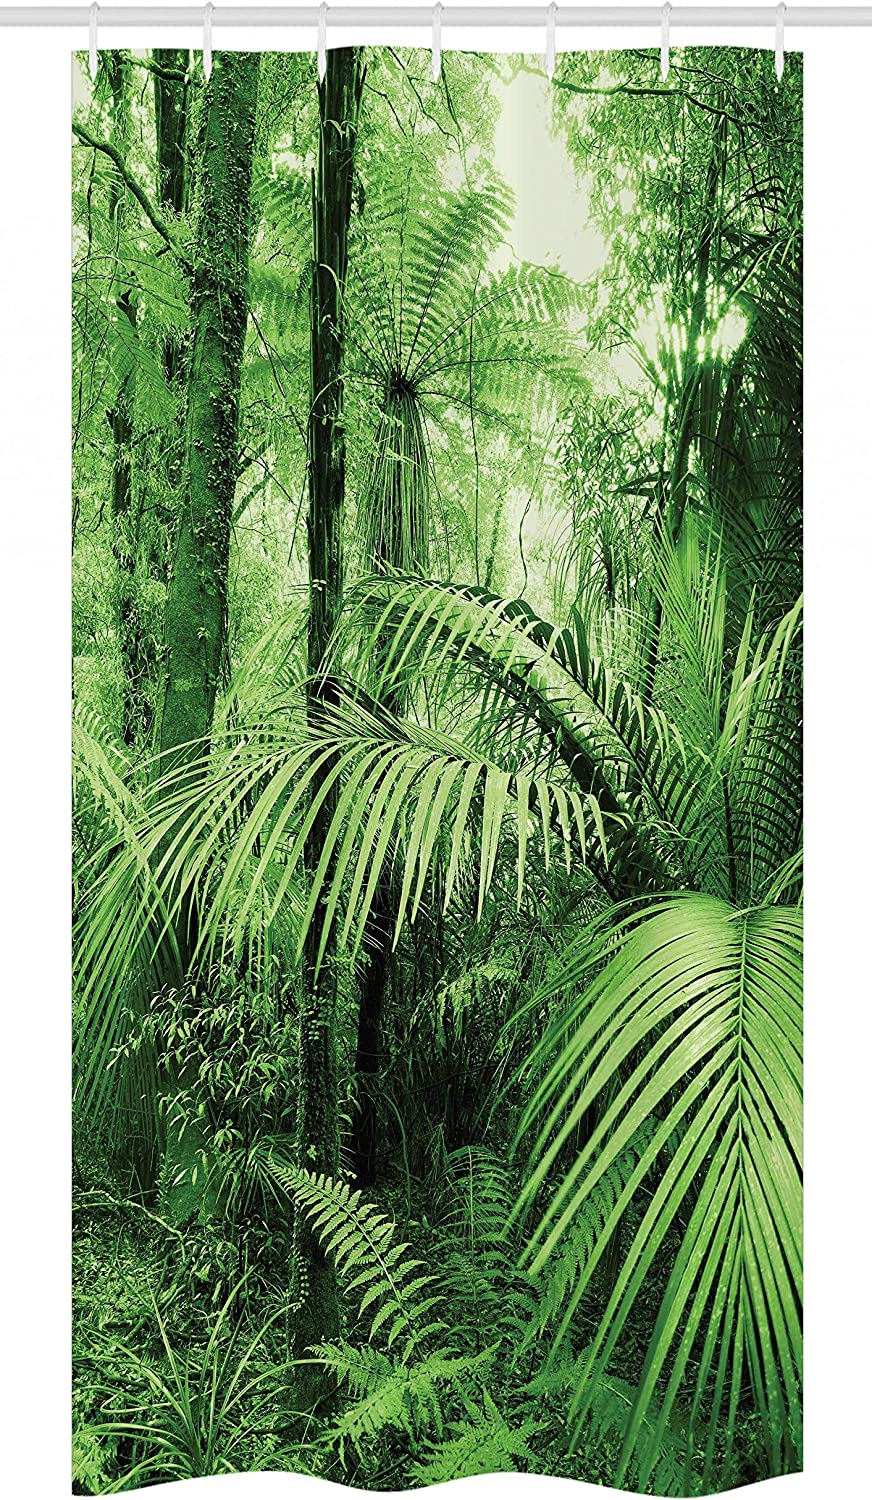 """Ambesonne Rainforest Stall Shower Curtain, Palm Trees and Exotic Plants in Tropical Jungle Wild Nature Theme Illustration, Fabric Bathroom Decor Set with Hooks, 36"""" X 72"""", Green"""